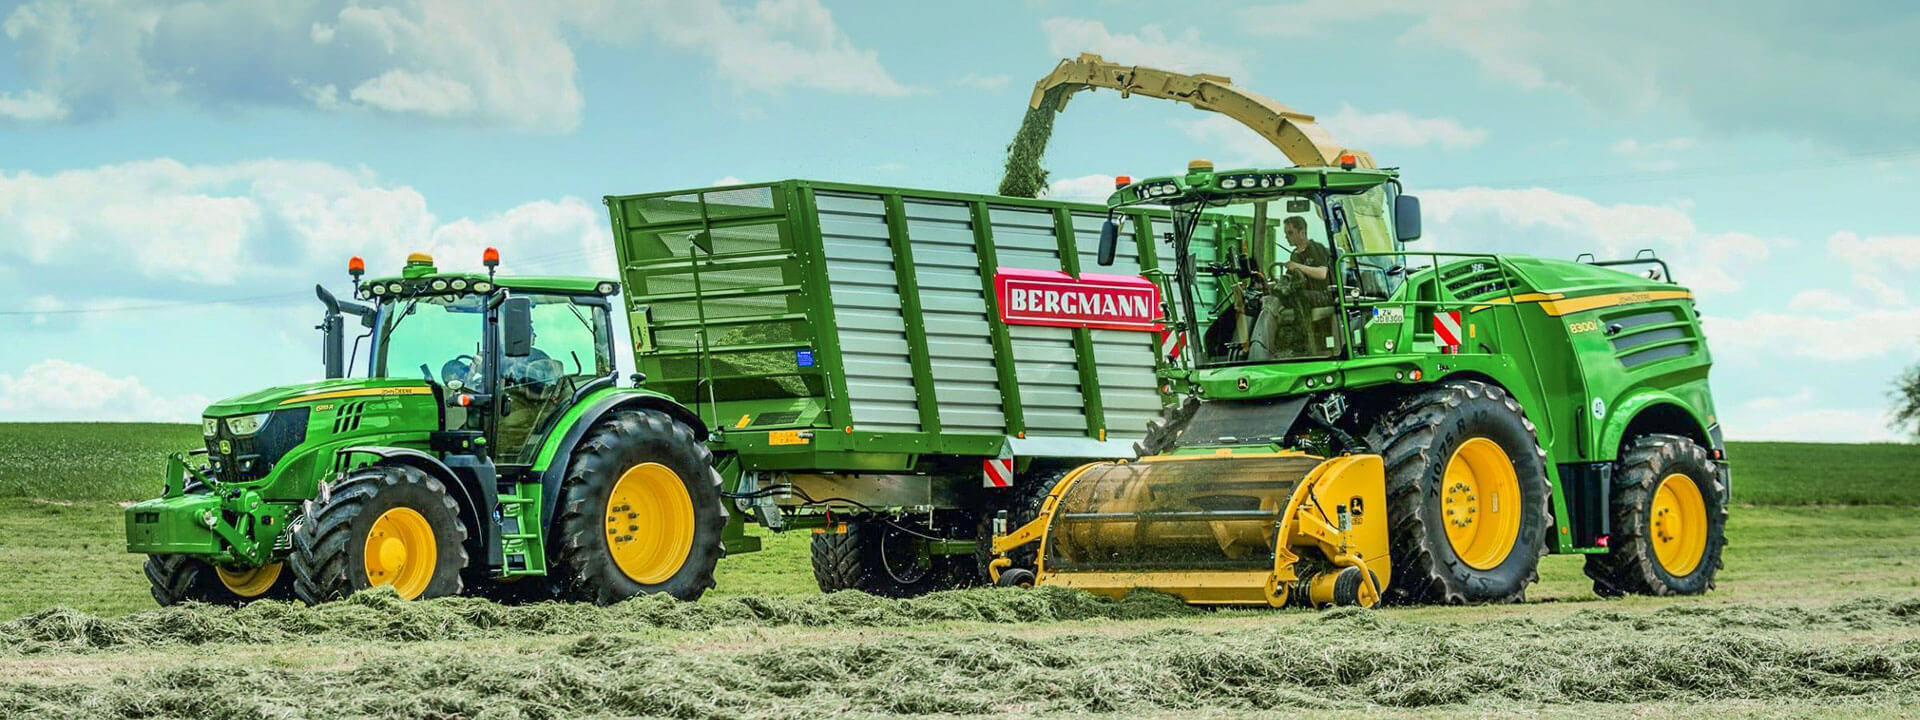 bergmann slage trailer with John Deere forage harvester grass silage harvest